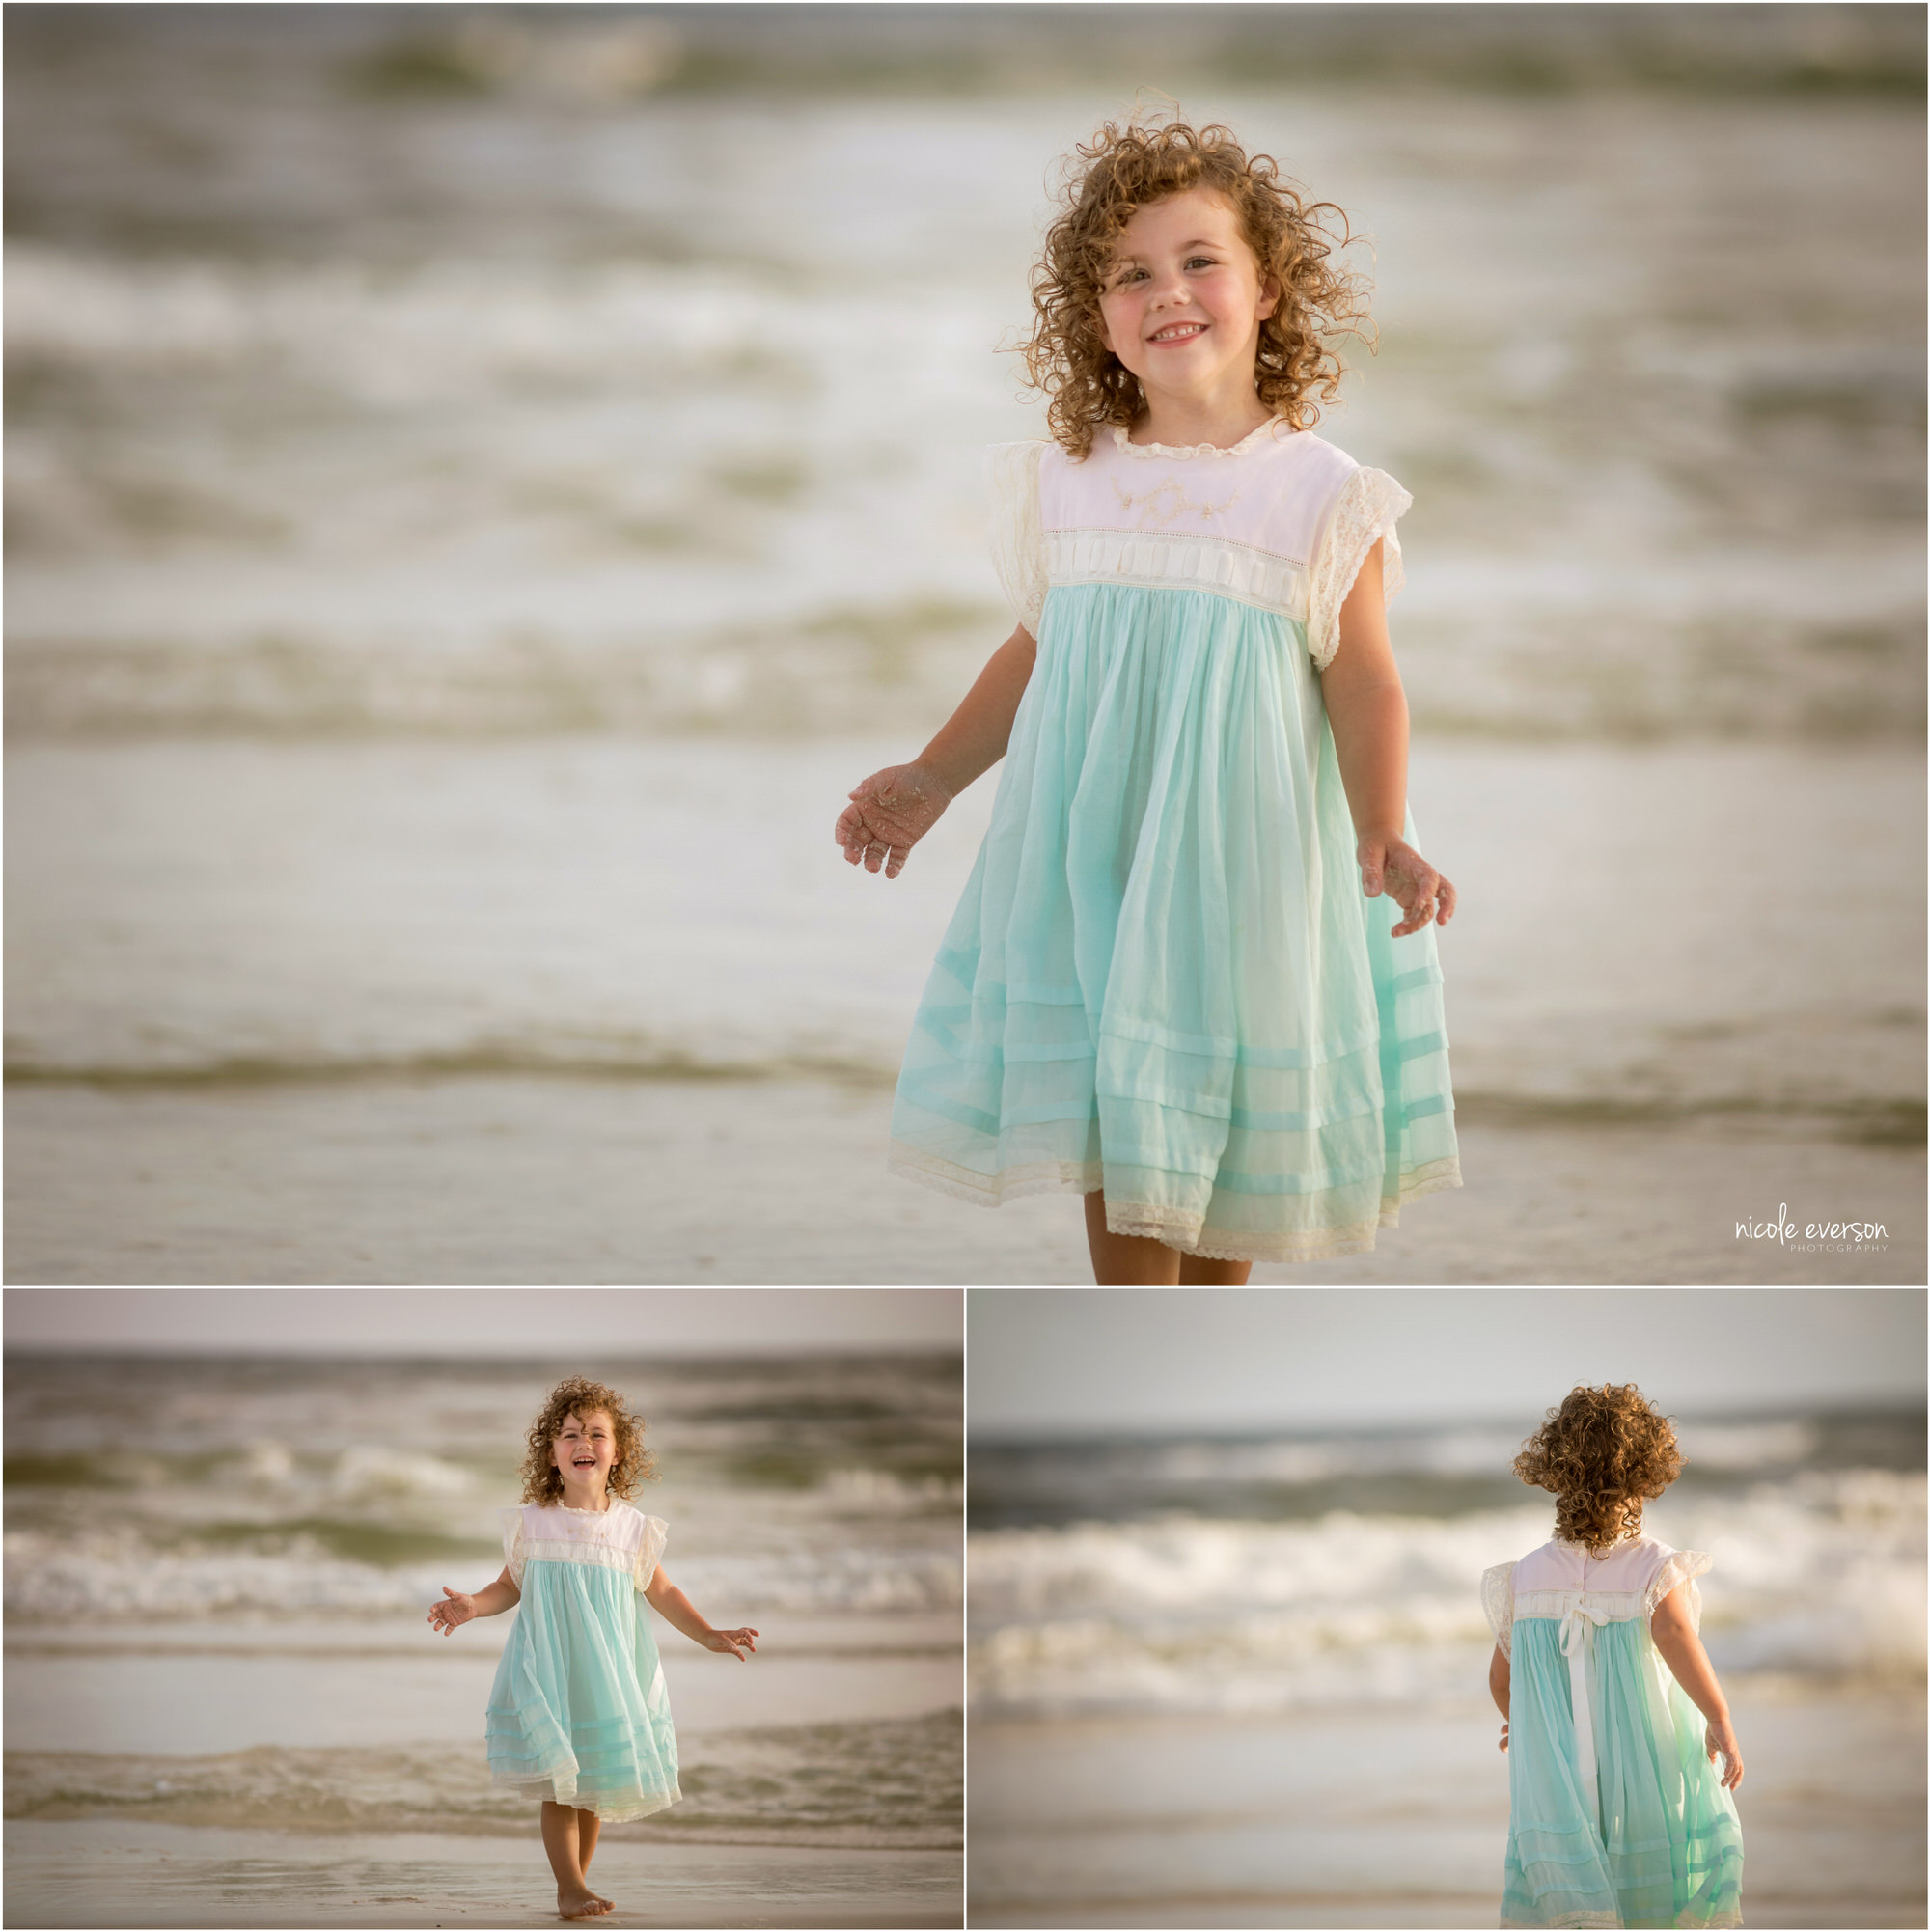 Curly headed girl runs on Watercolor Inn Beach. Photographed by Nicole Everson, Watercolor Inn Beach Family Photographer.